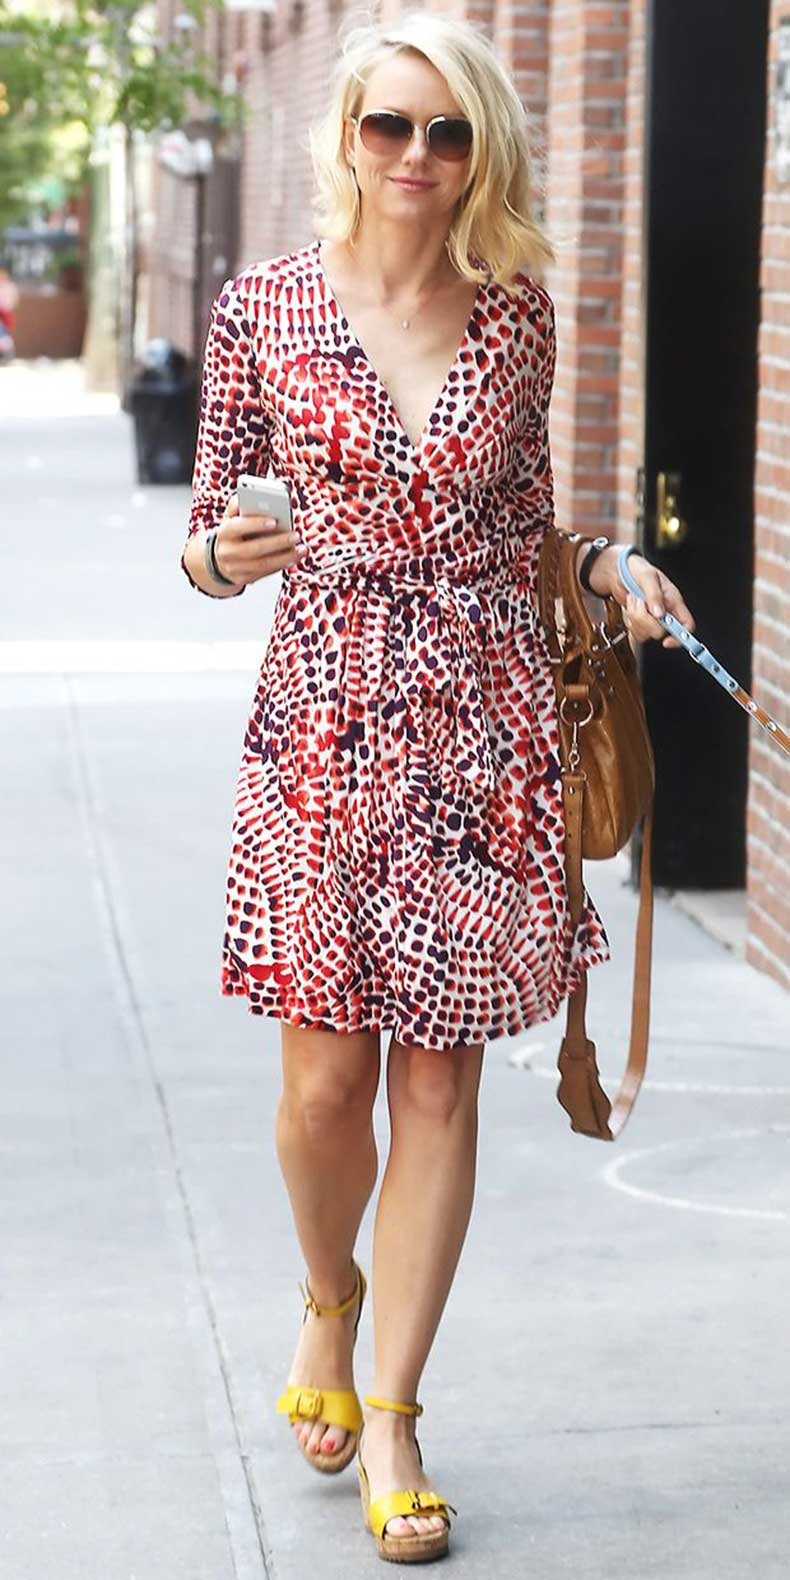 summer-dresses-the-wrap-dress-DVF-style-12